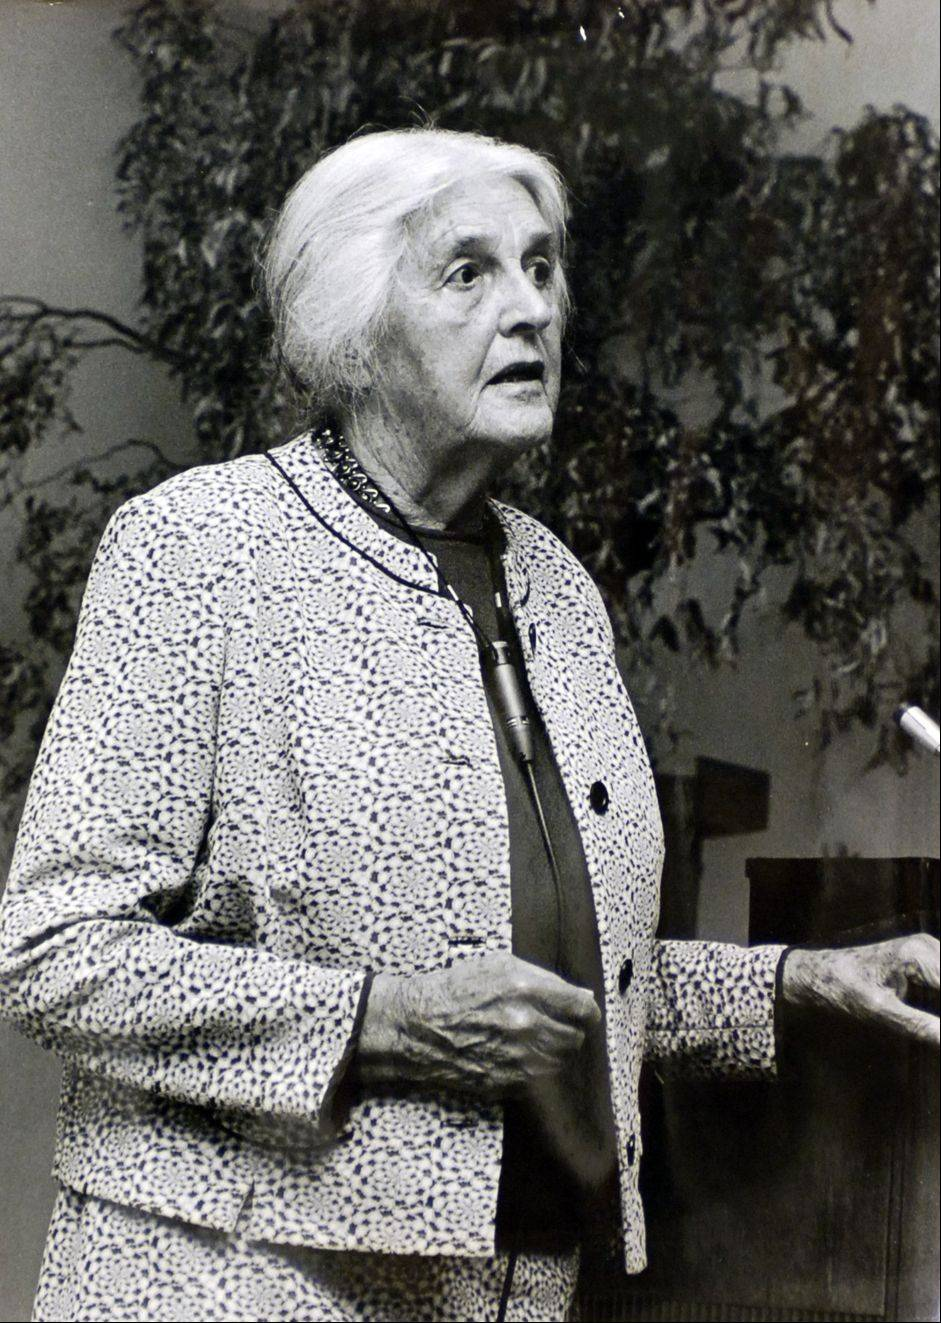 May Watts, who gave life to the Illinois Prairie Path, lived in Naperville for 35 years and was a naturalist at the Morton Arboretum.